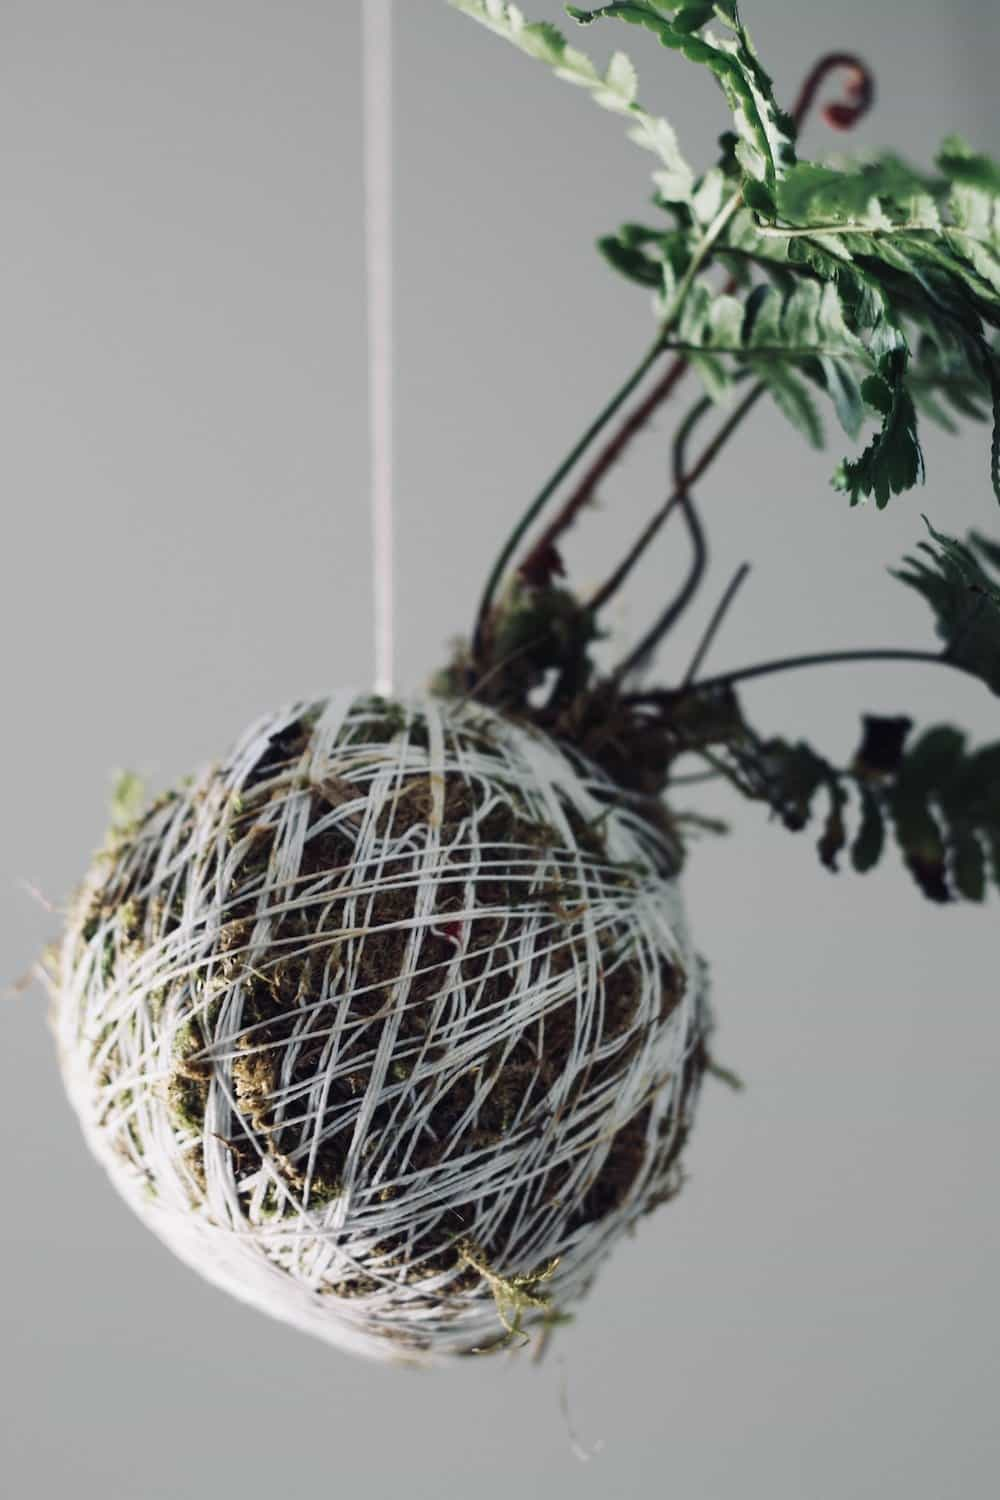 She wraps string around soil and moss to create an amazing hanging string garden! This moss ball is so gorgeous #kokedama #mossball #stringgarden #hanginggarden